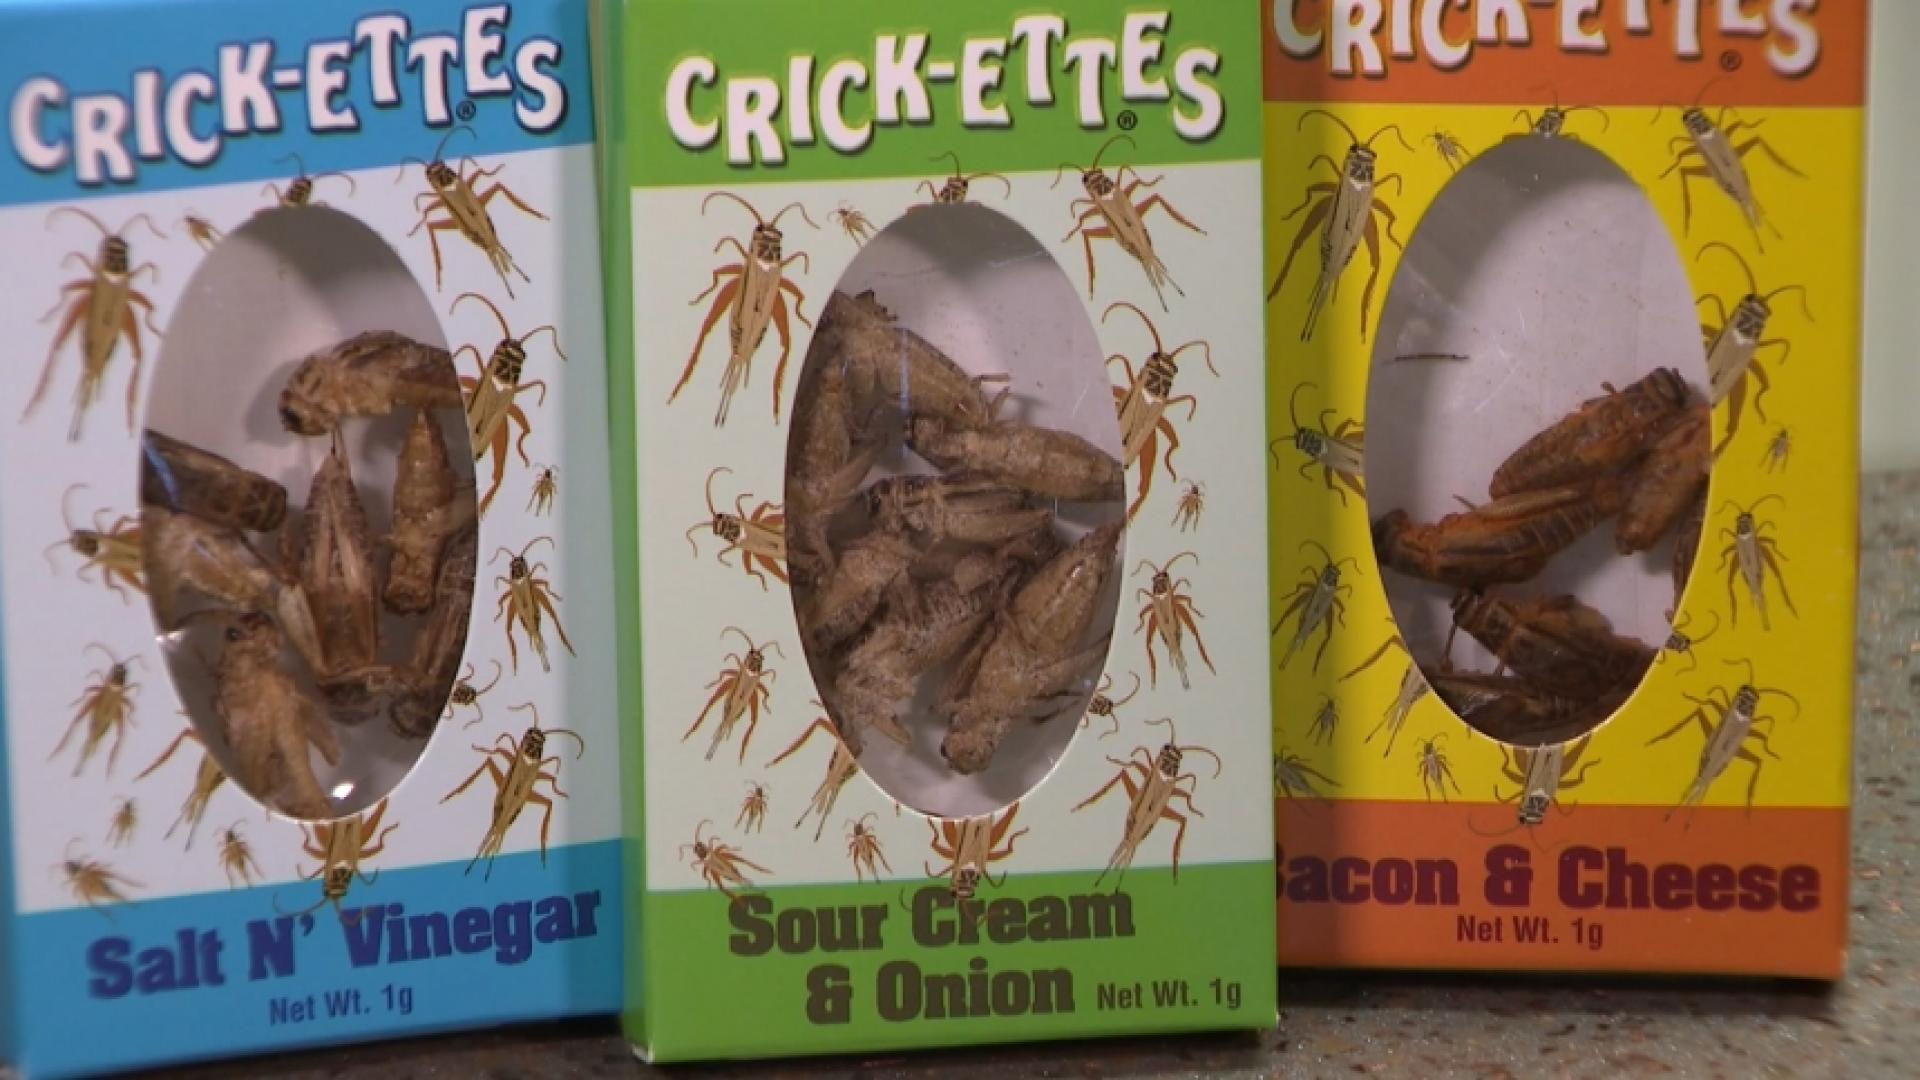 Crickets: Food Of The Future?